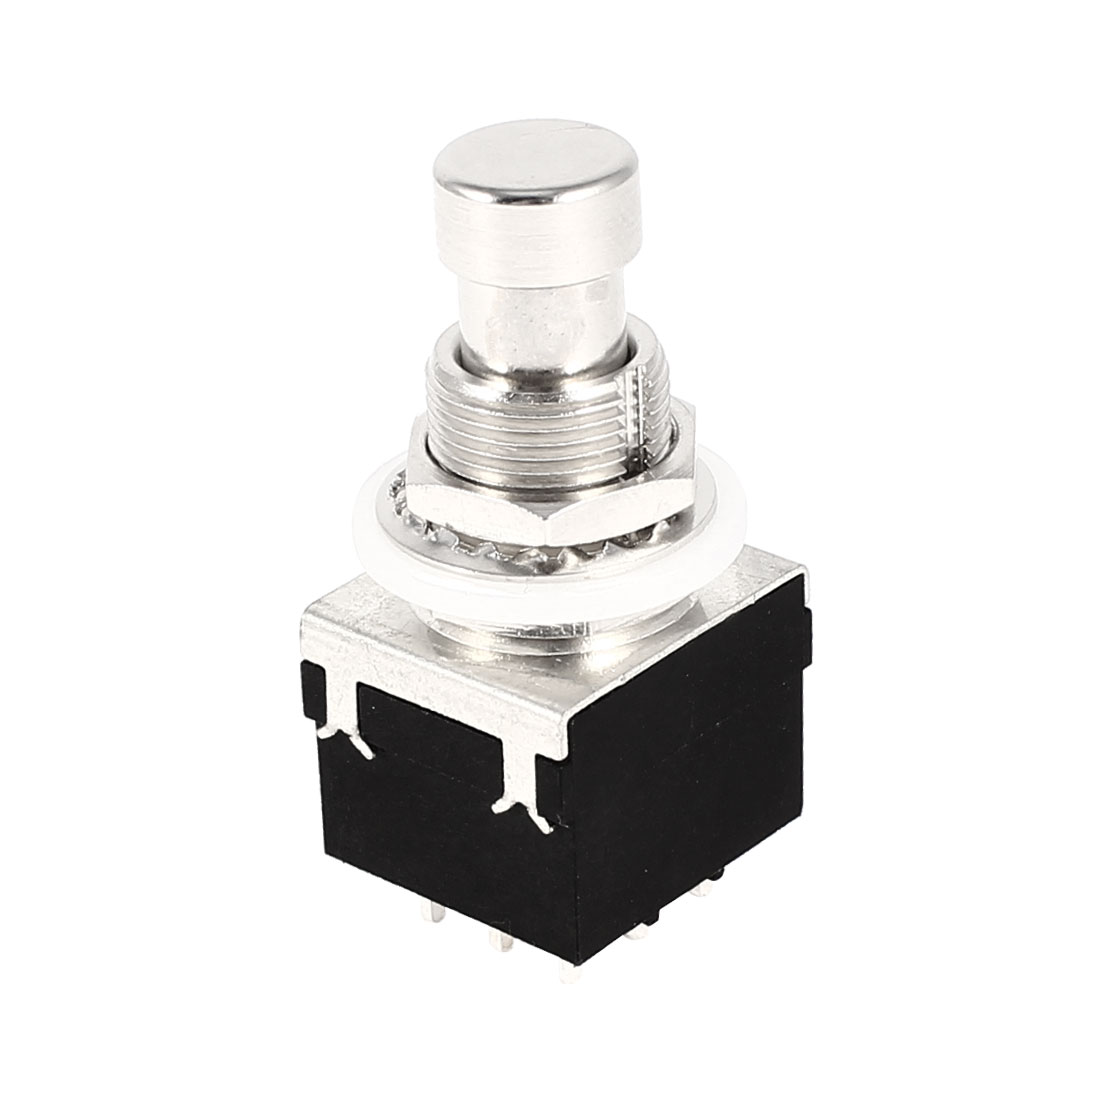 ST9PX02L 3PDT 9Pin True Bypass Mod Guitar Effects Pedal Footswitch Momentary Switch AC 125V 4A